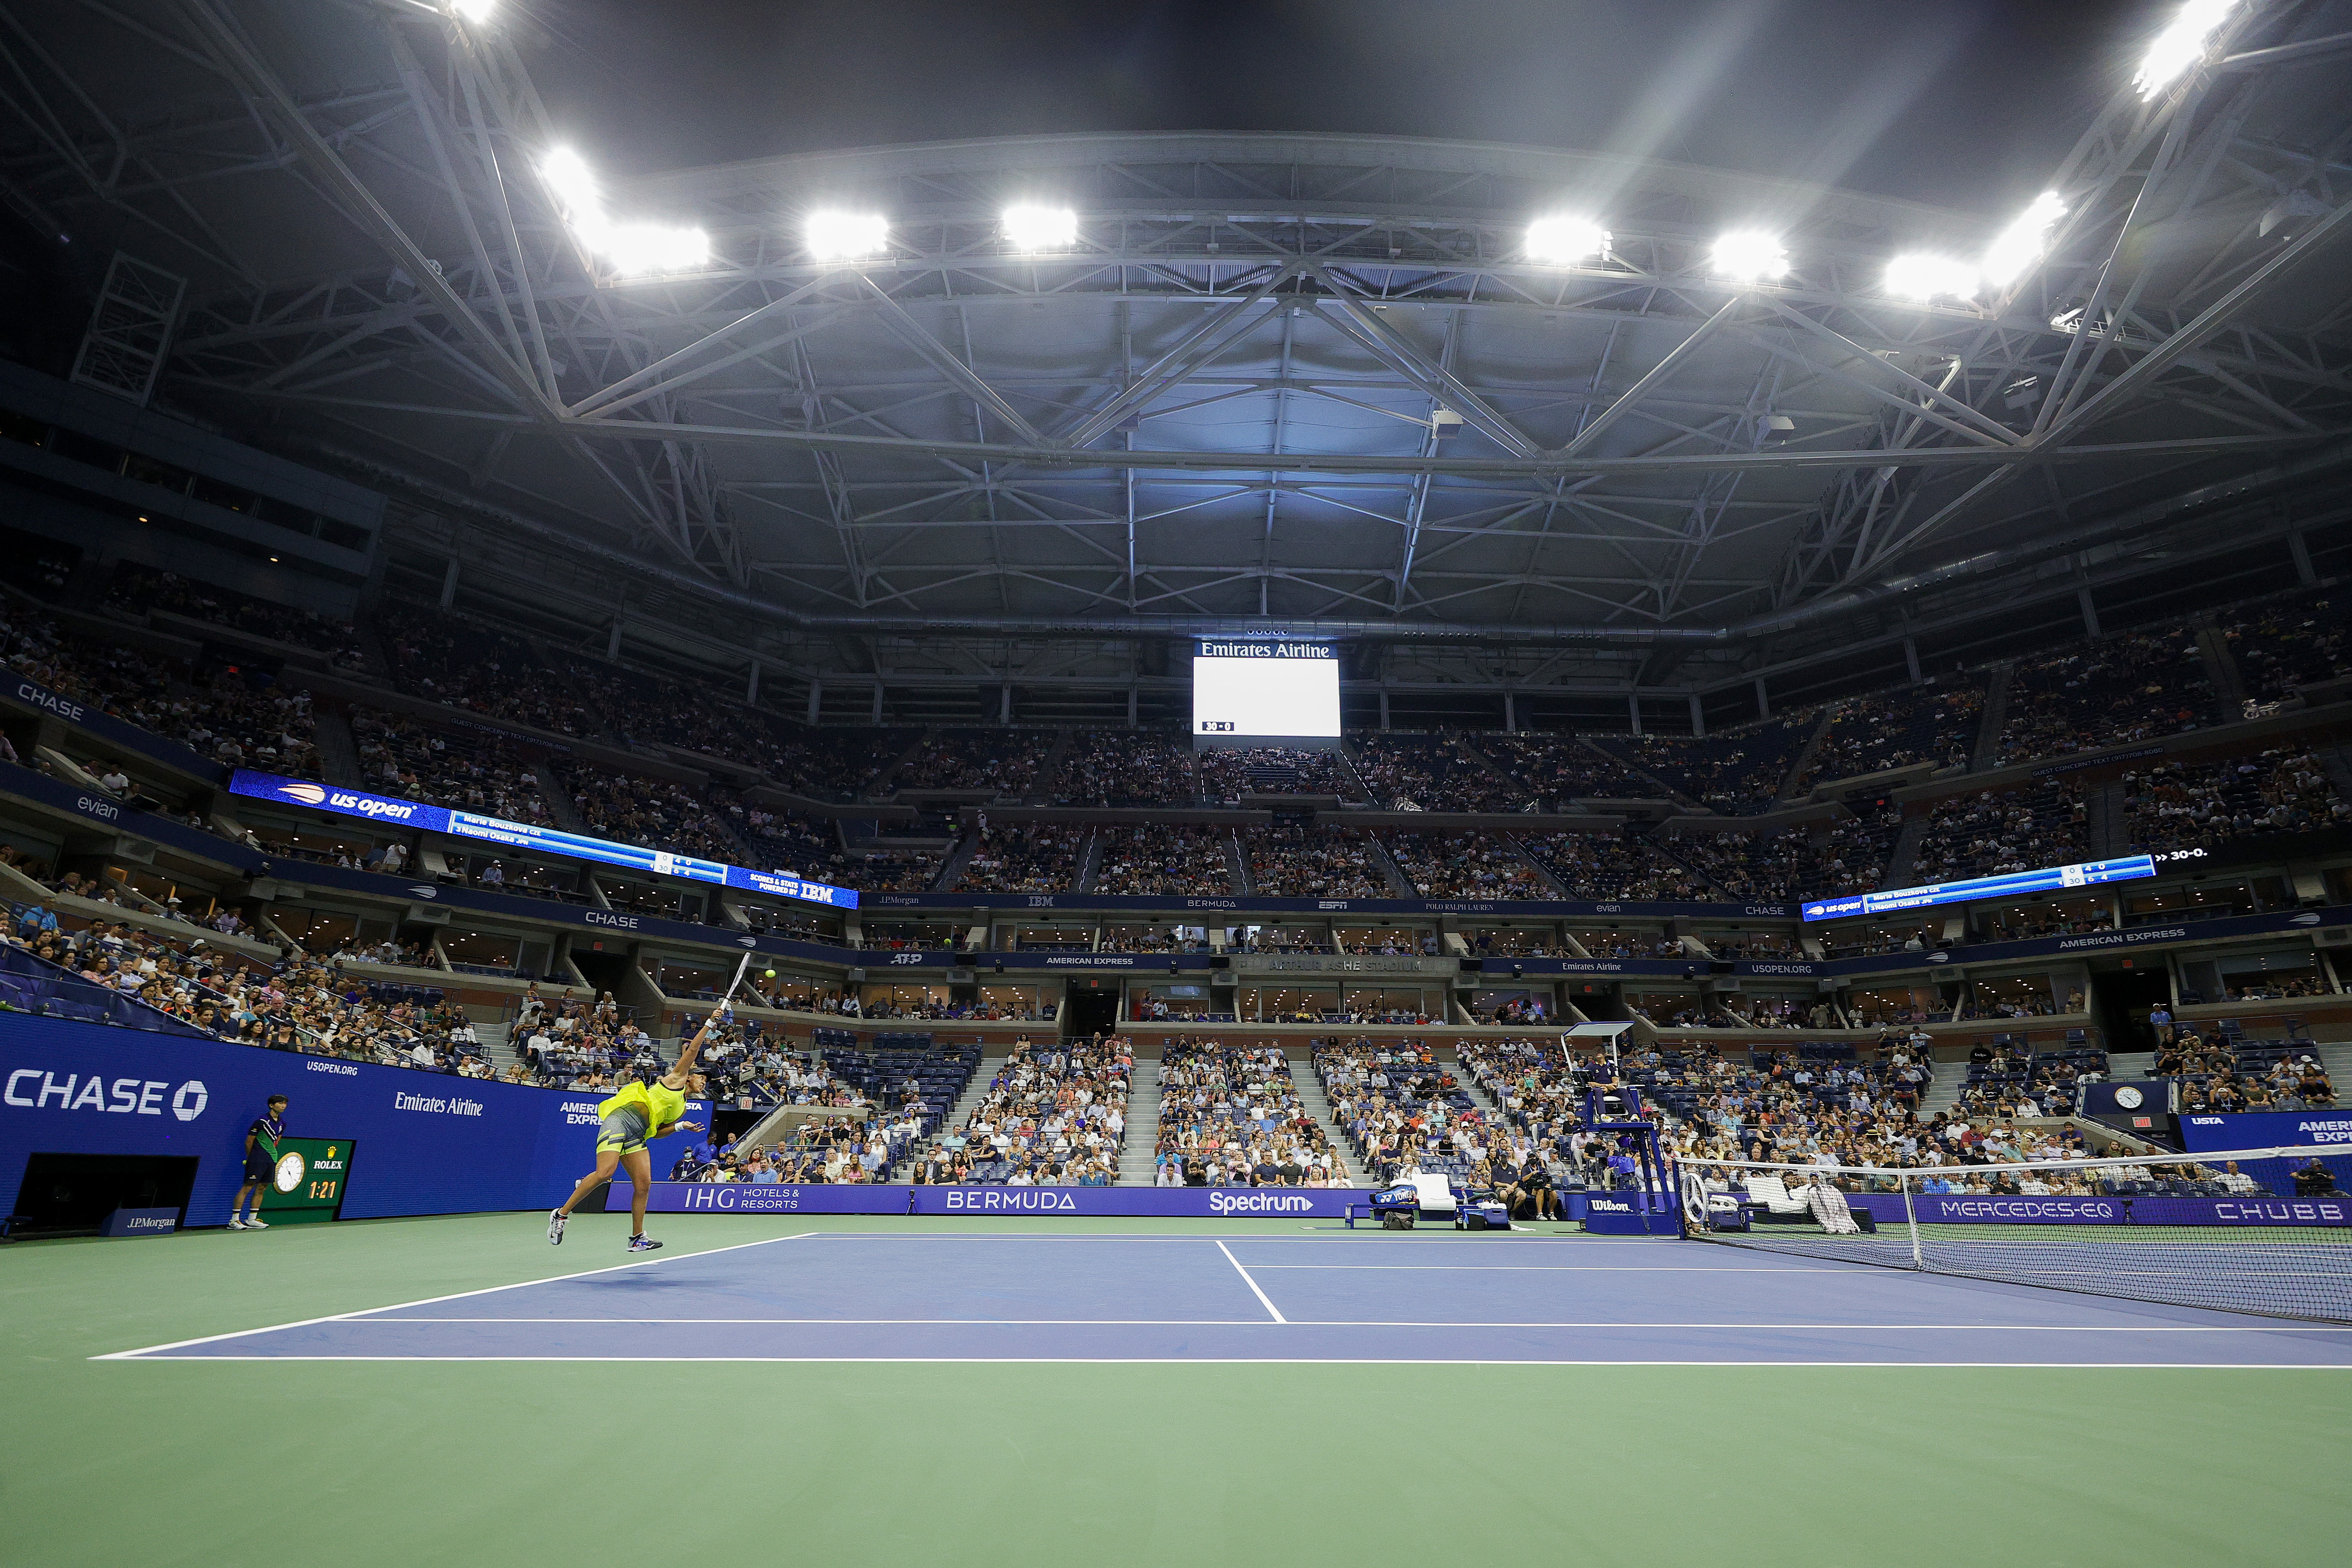 Naomi Osaka of Japan serves against Marie Bouzkova of Czech Republic during their women's singles first round match on Day One of the 2021 US Open at the Billie Jean King National Tennis Center on August 30, 2021 in the Flushing neighborhood of the Queens borough of New York City.